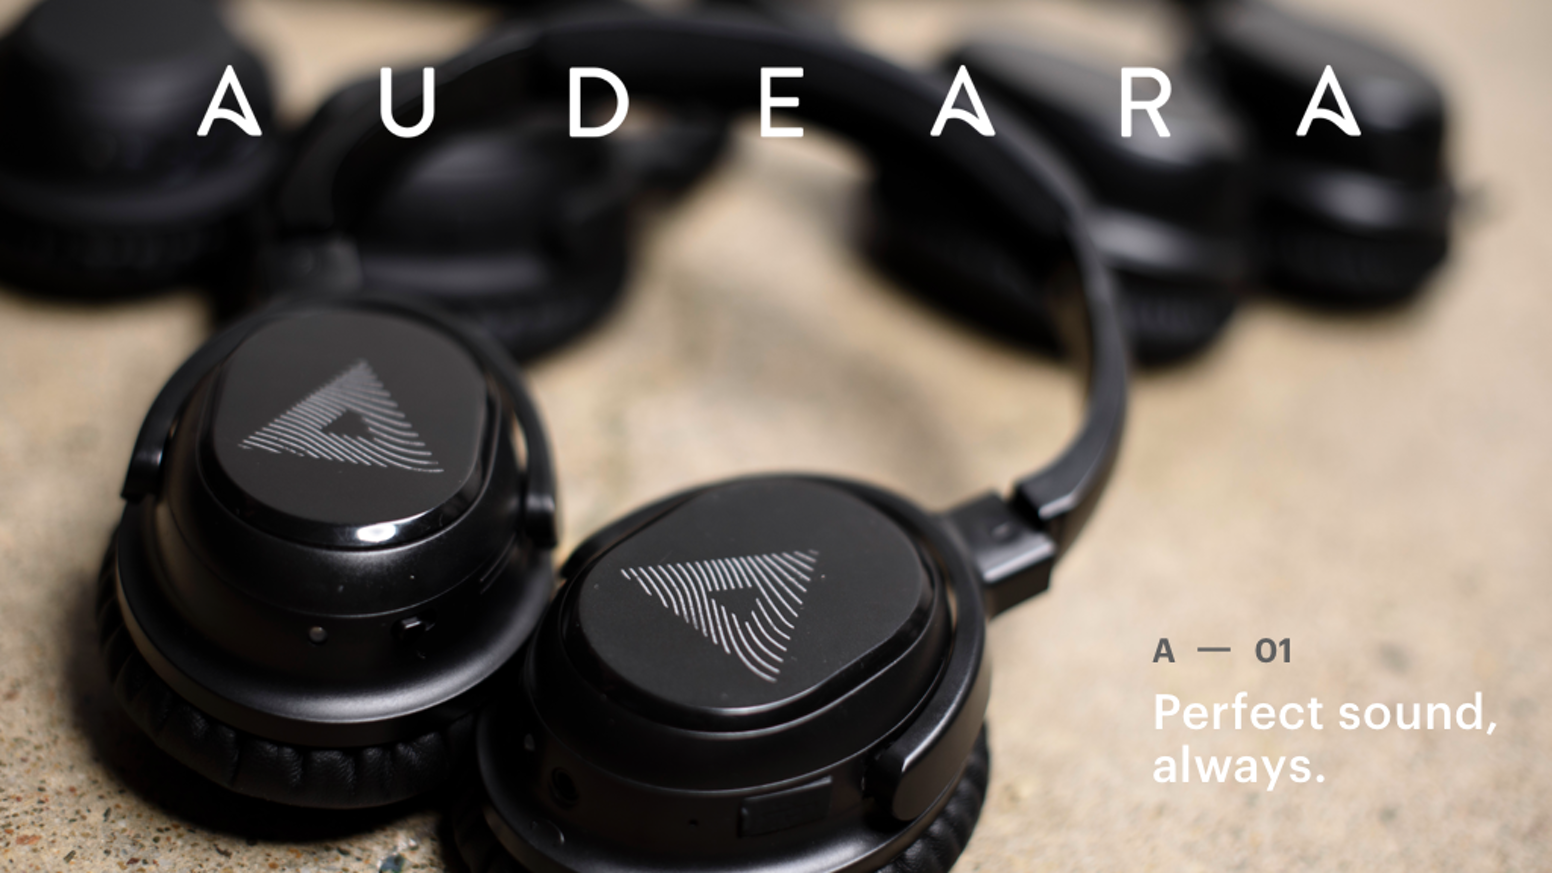 The world's first full fidelity headphones. Designed by doctors and engineers to give you an experience like never before.